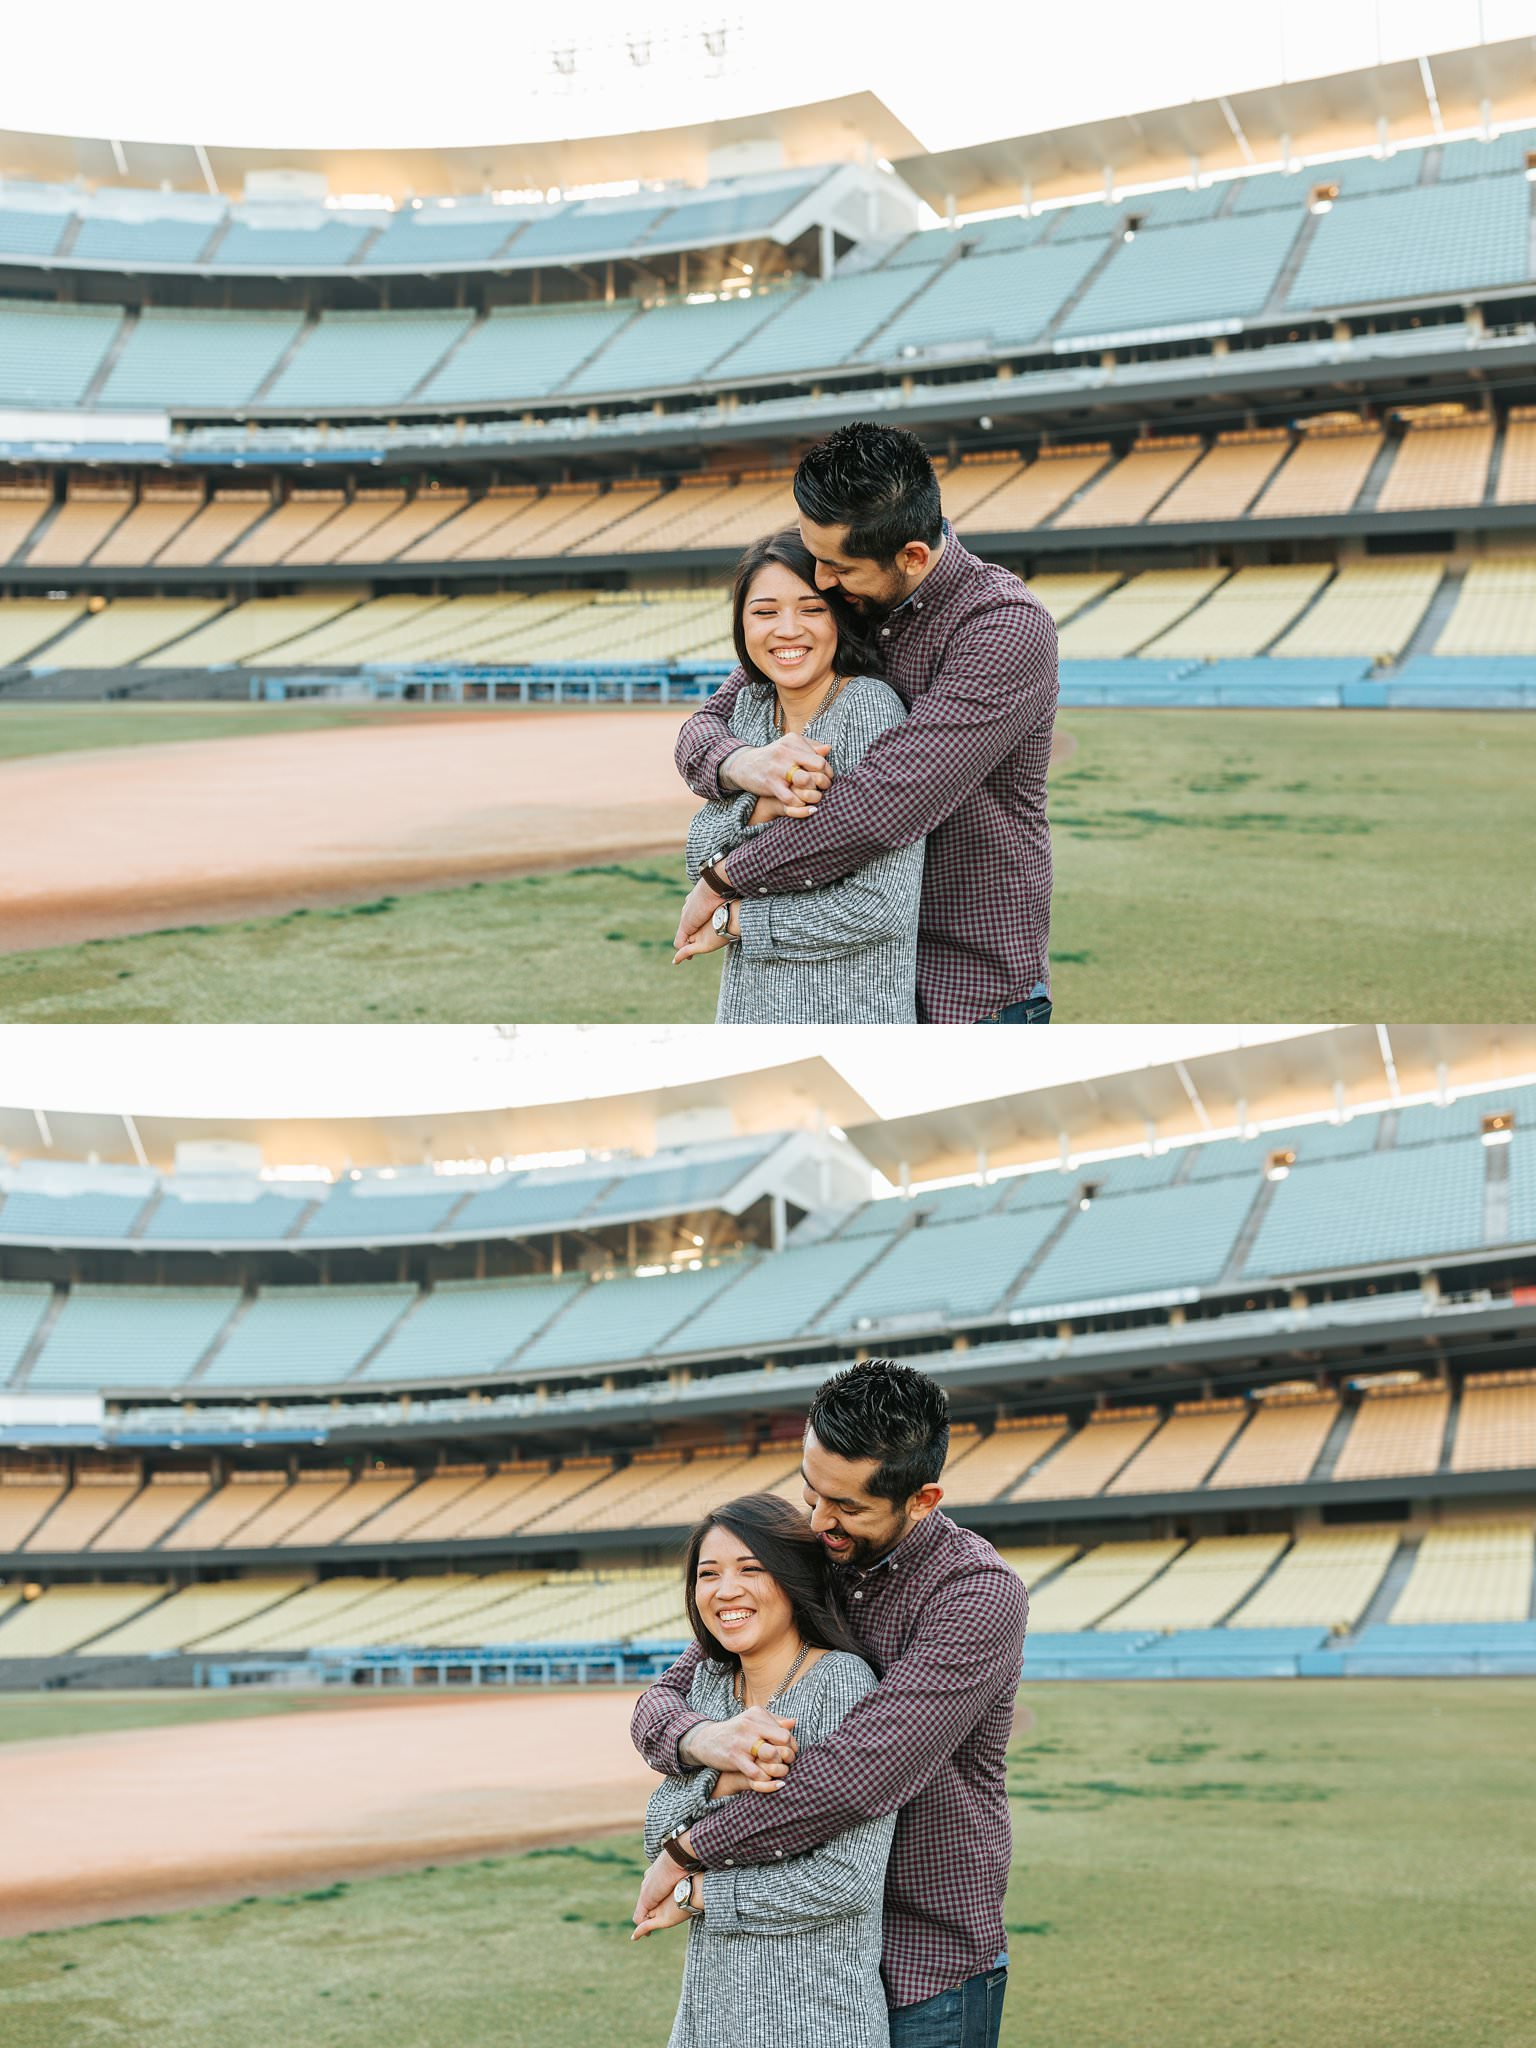 Lets go Dodgers - Dodger Stadium Engagement Session - Los Angeles Wedding Photographer- http://brittneyhannonphotography.com